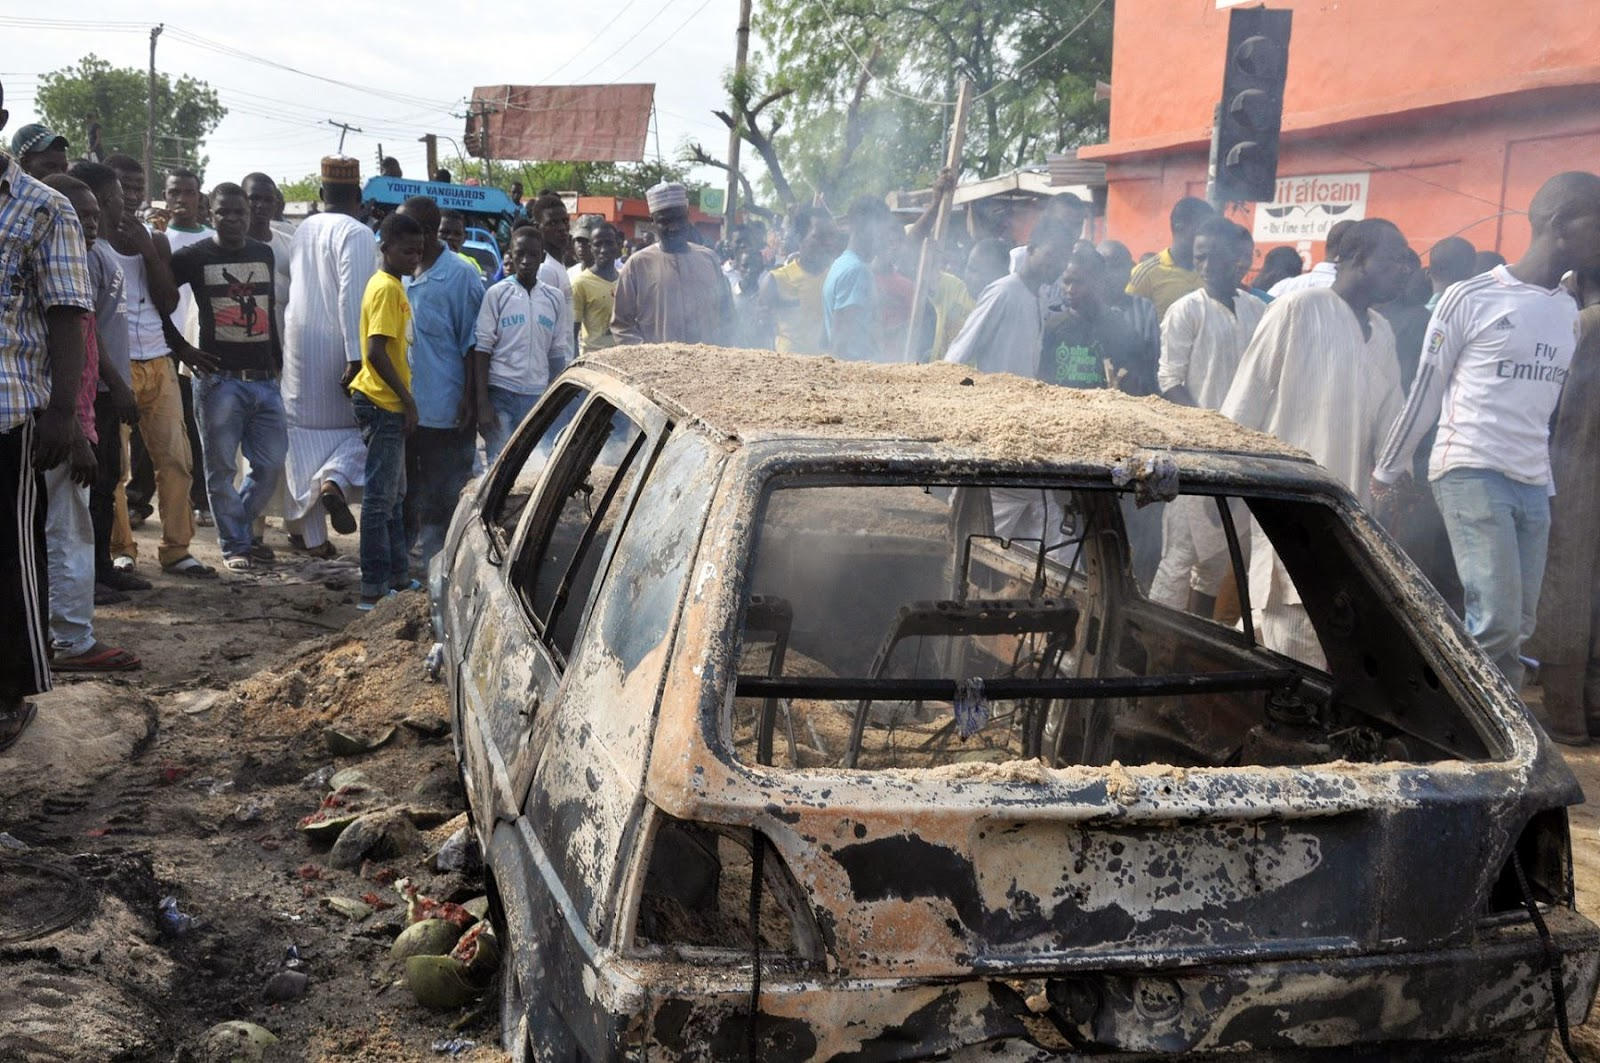 Nigeria bombing kills 30, injures 80 in Borno state